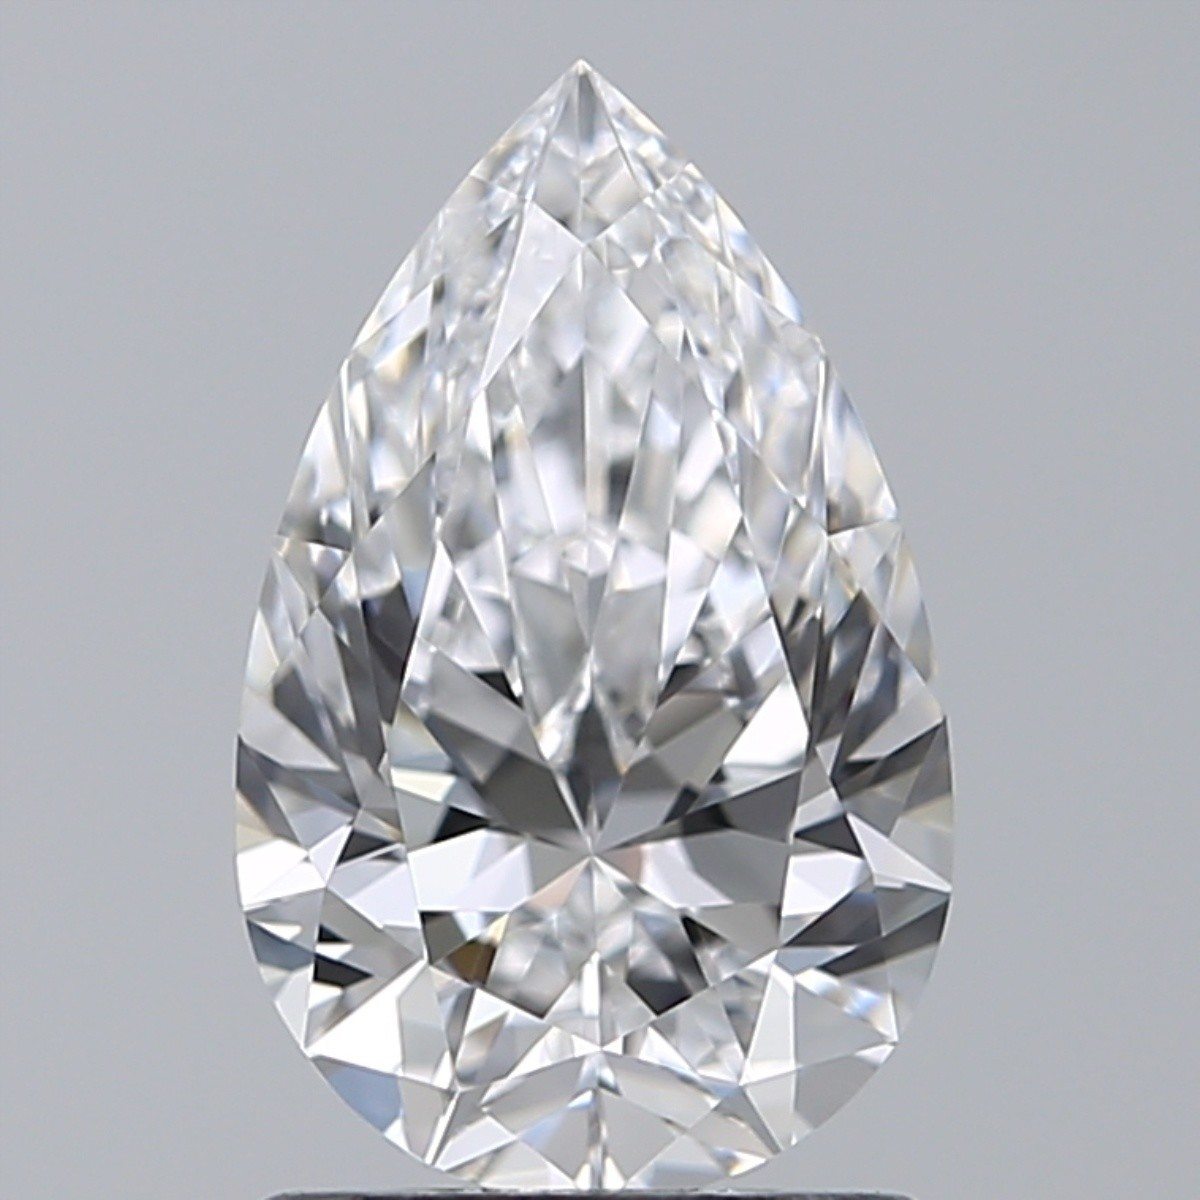 1.16 Carat Pear Diamond (D/FL)